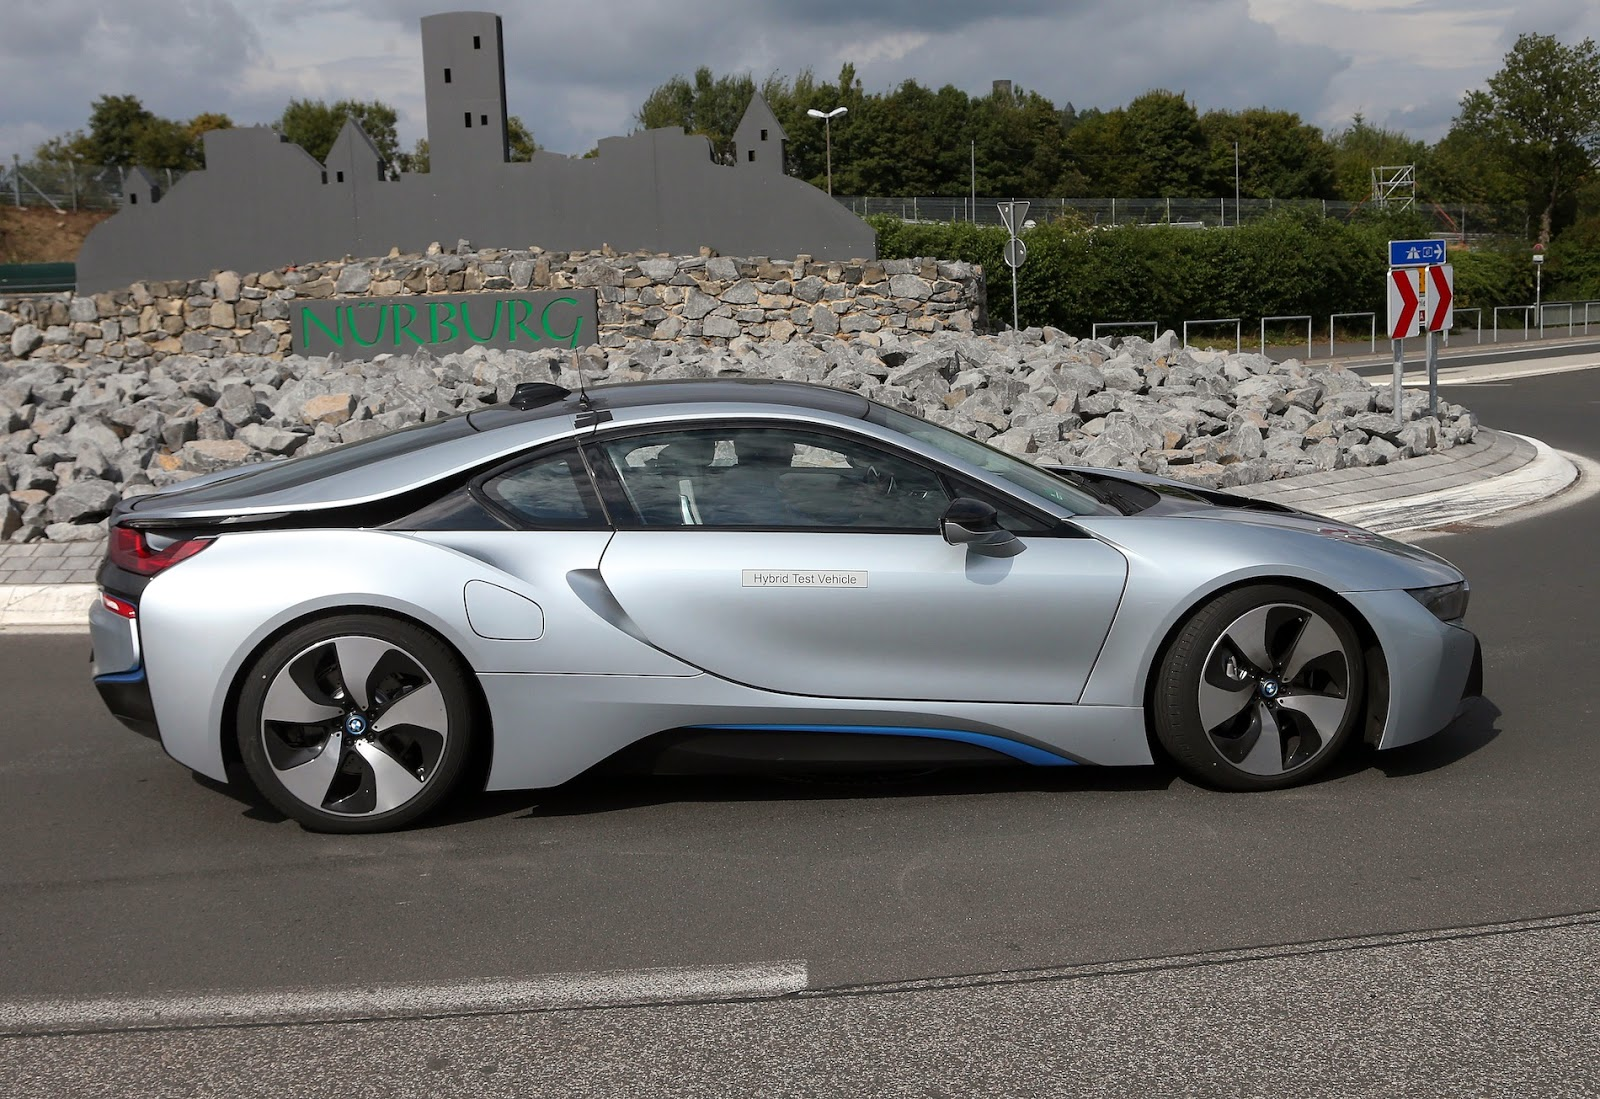 town country bmw mini markham blog iconic silver bmw i8 spotted. Black Bedroom Furniture Sets. Home Design Ideas